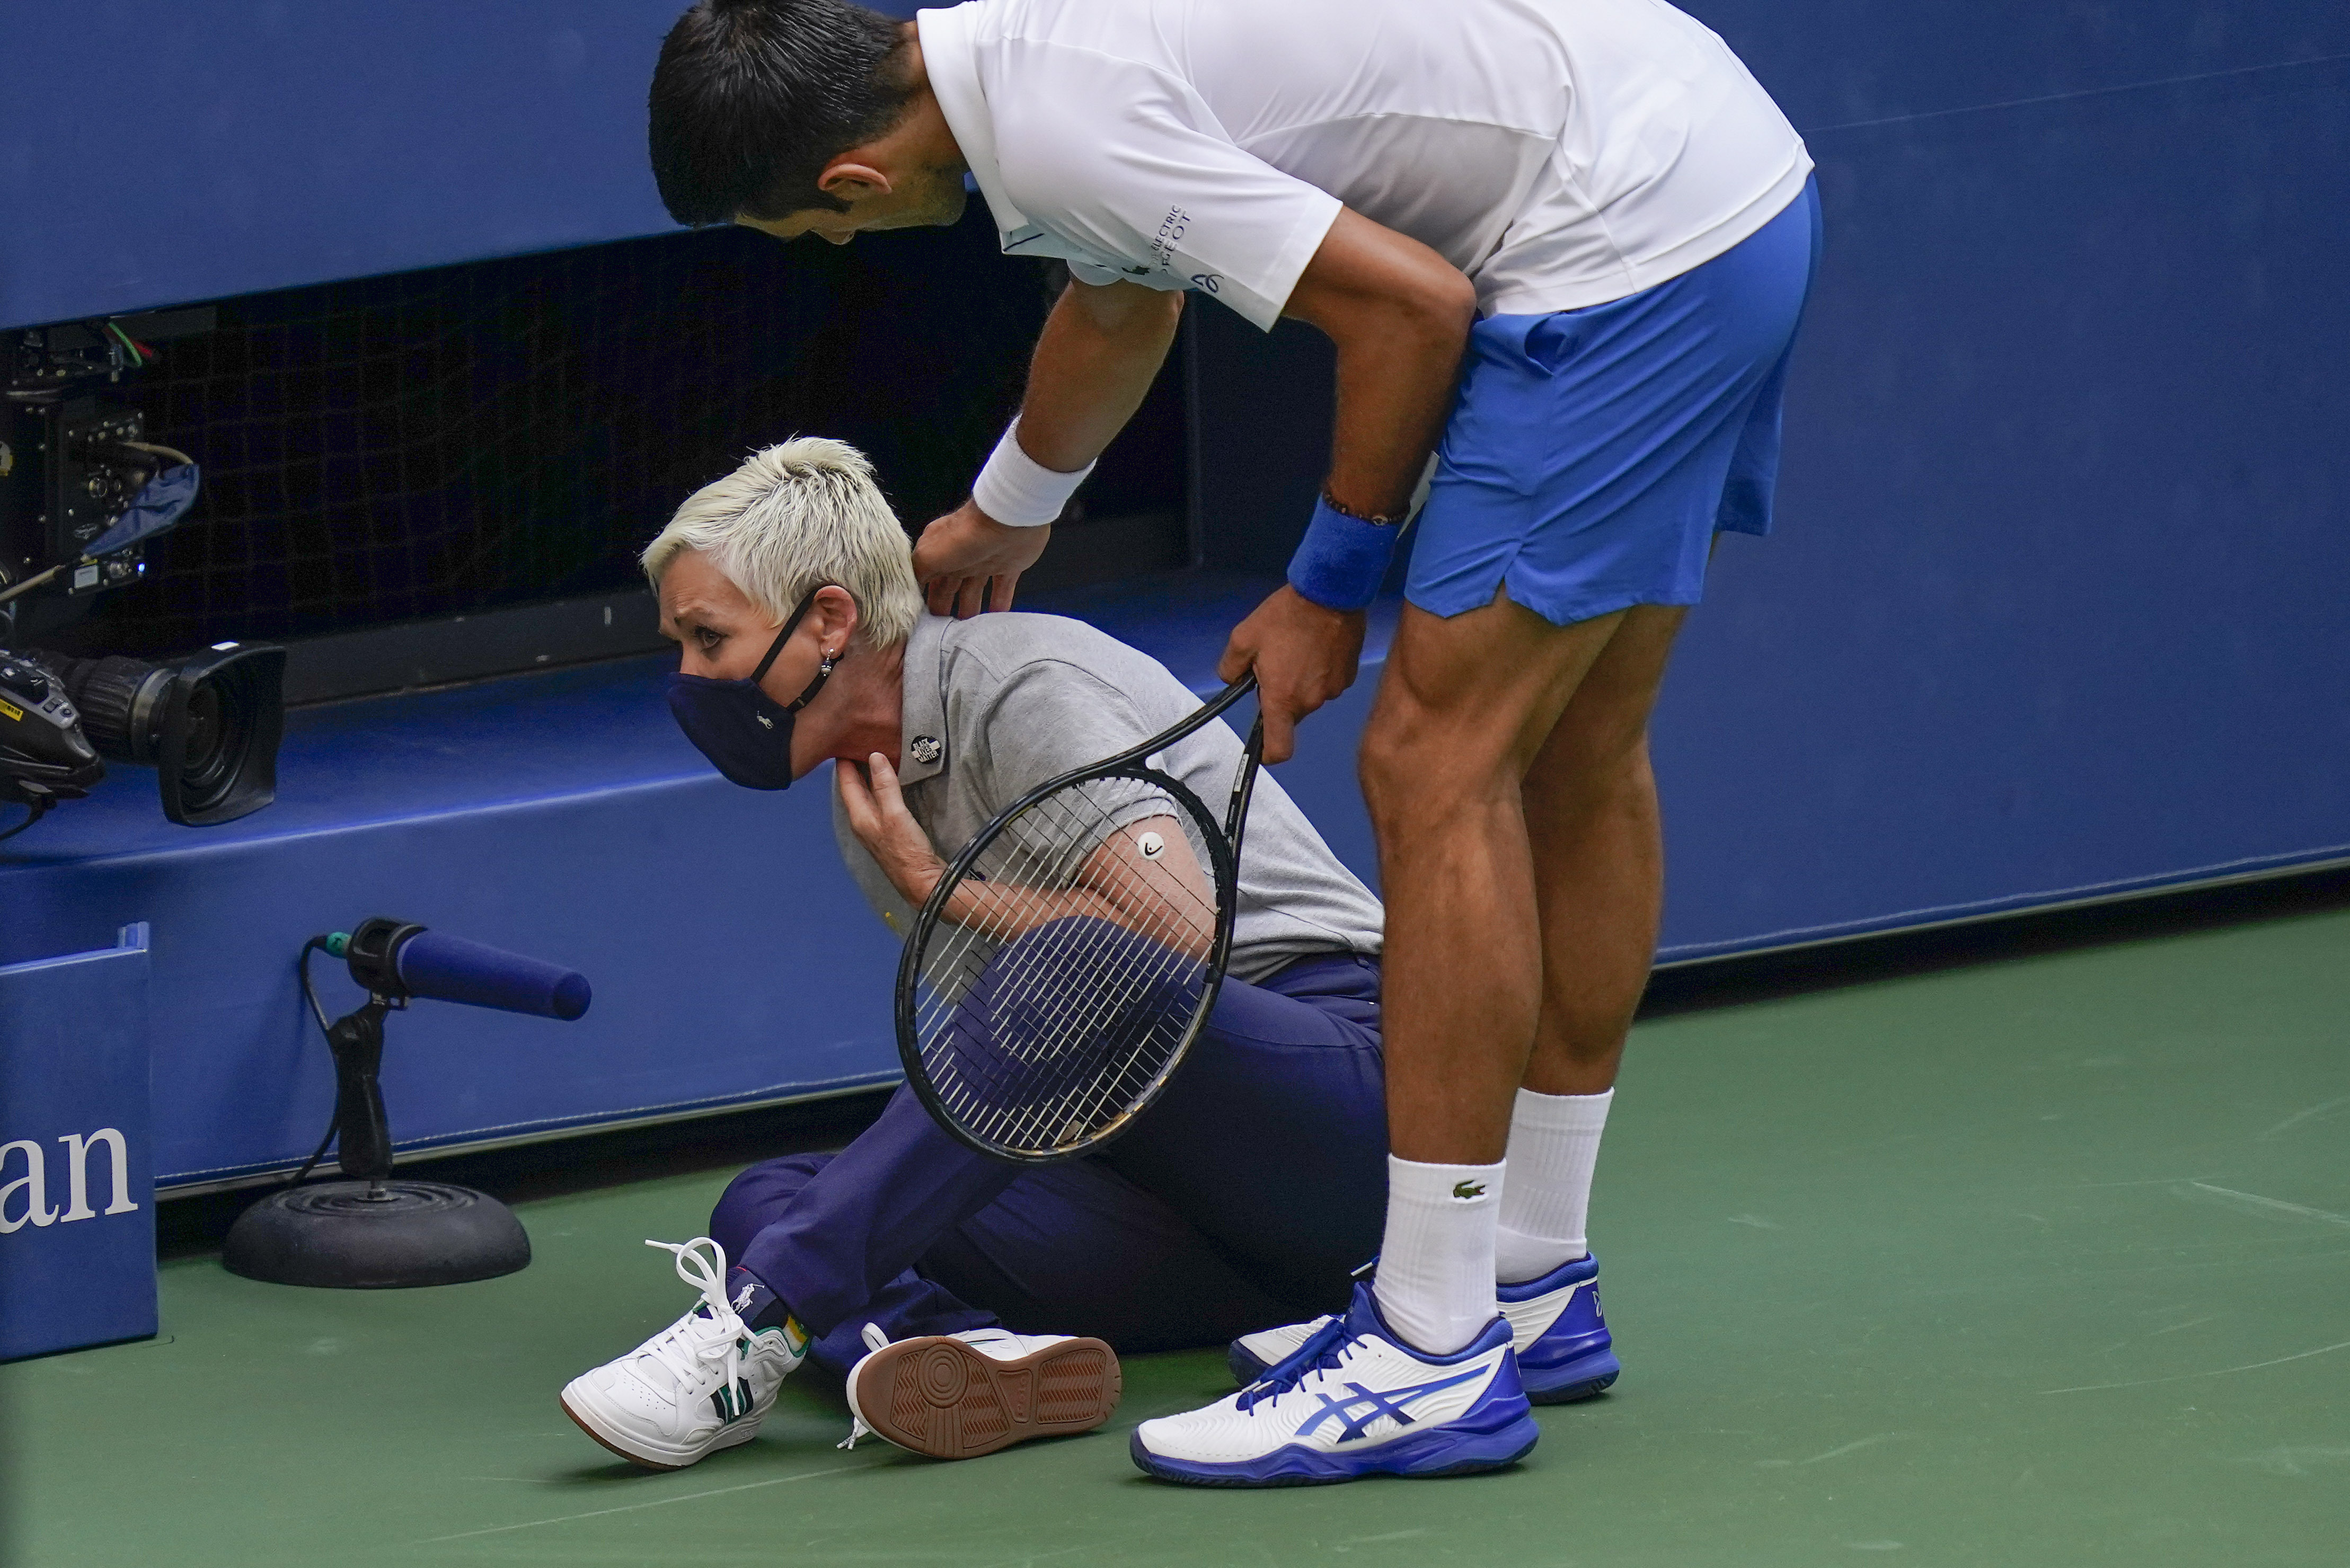 Novak Djokovic Out Of Us Open After Hitting Line Judge With Ball The Boston Globe